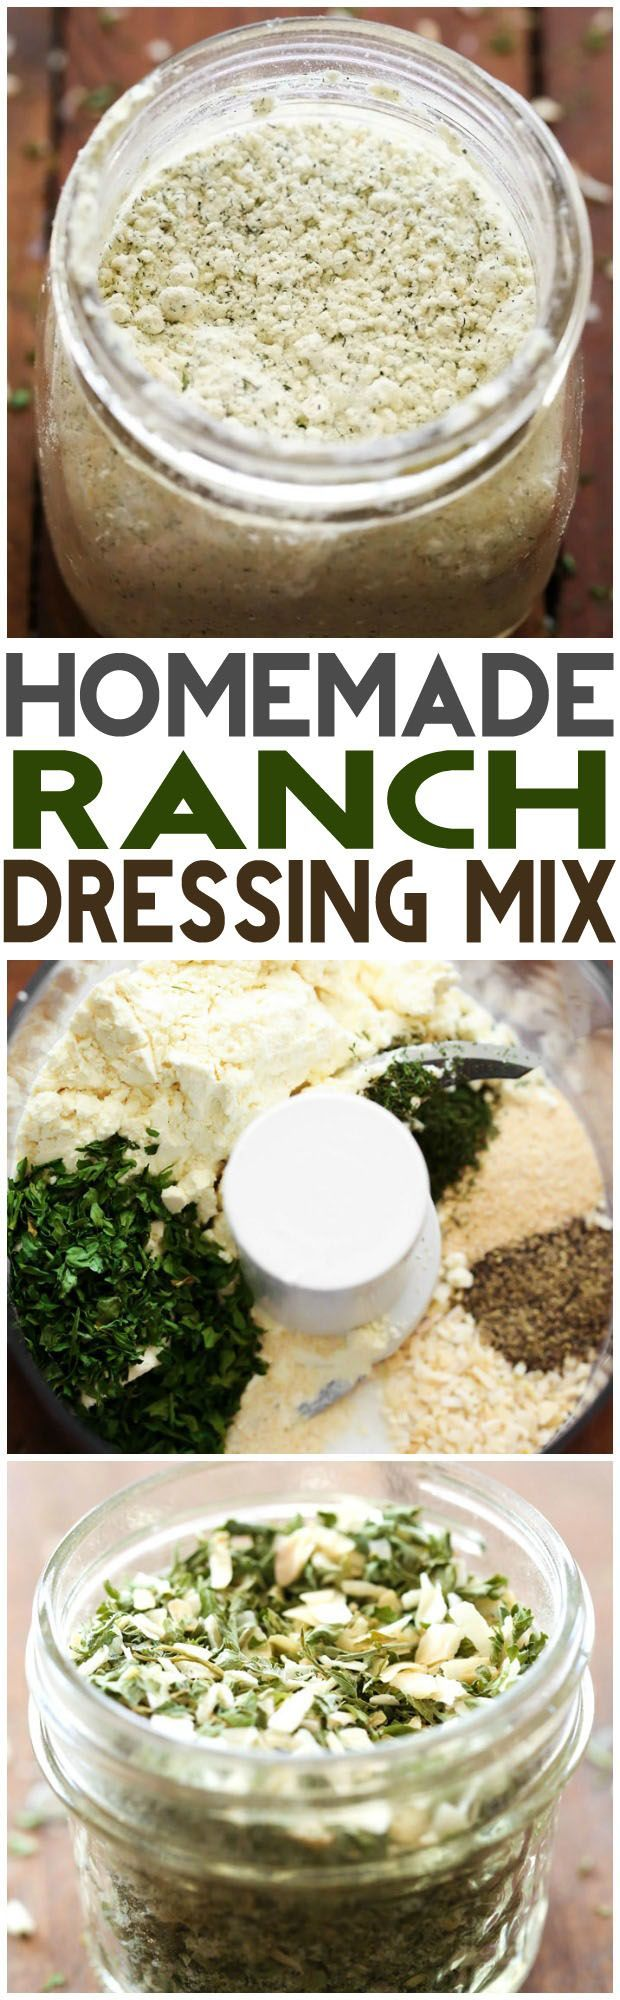 homemade ranch dressing mix recipe homemade homemade